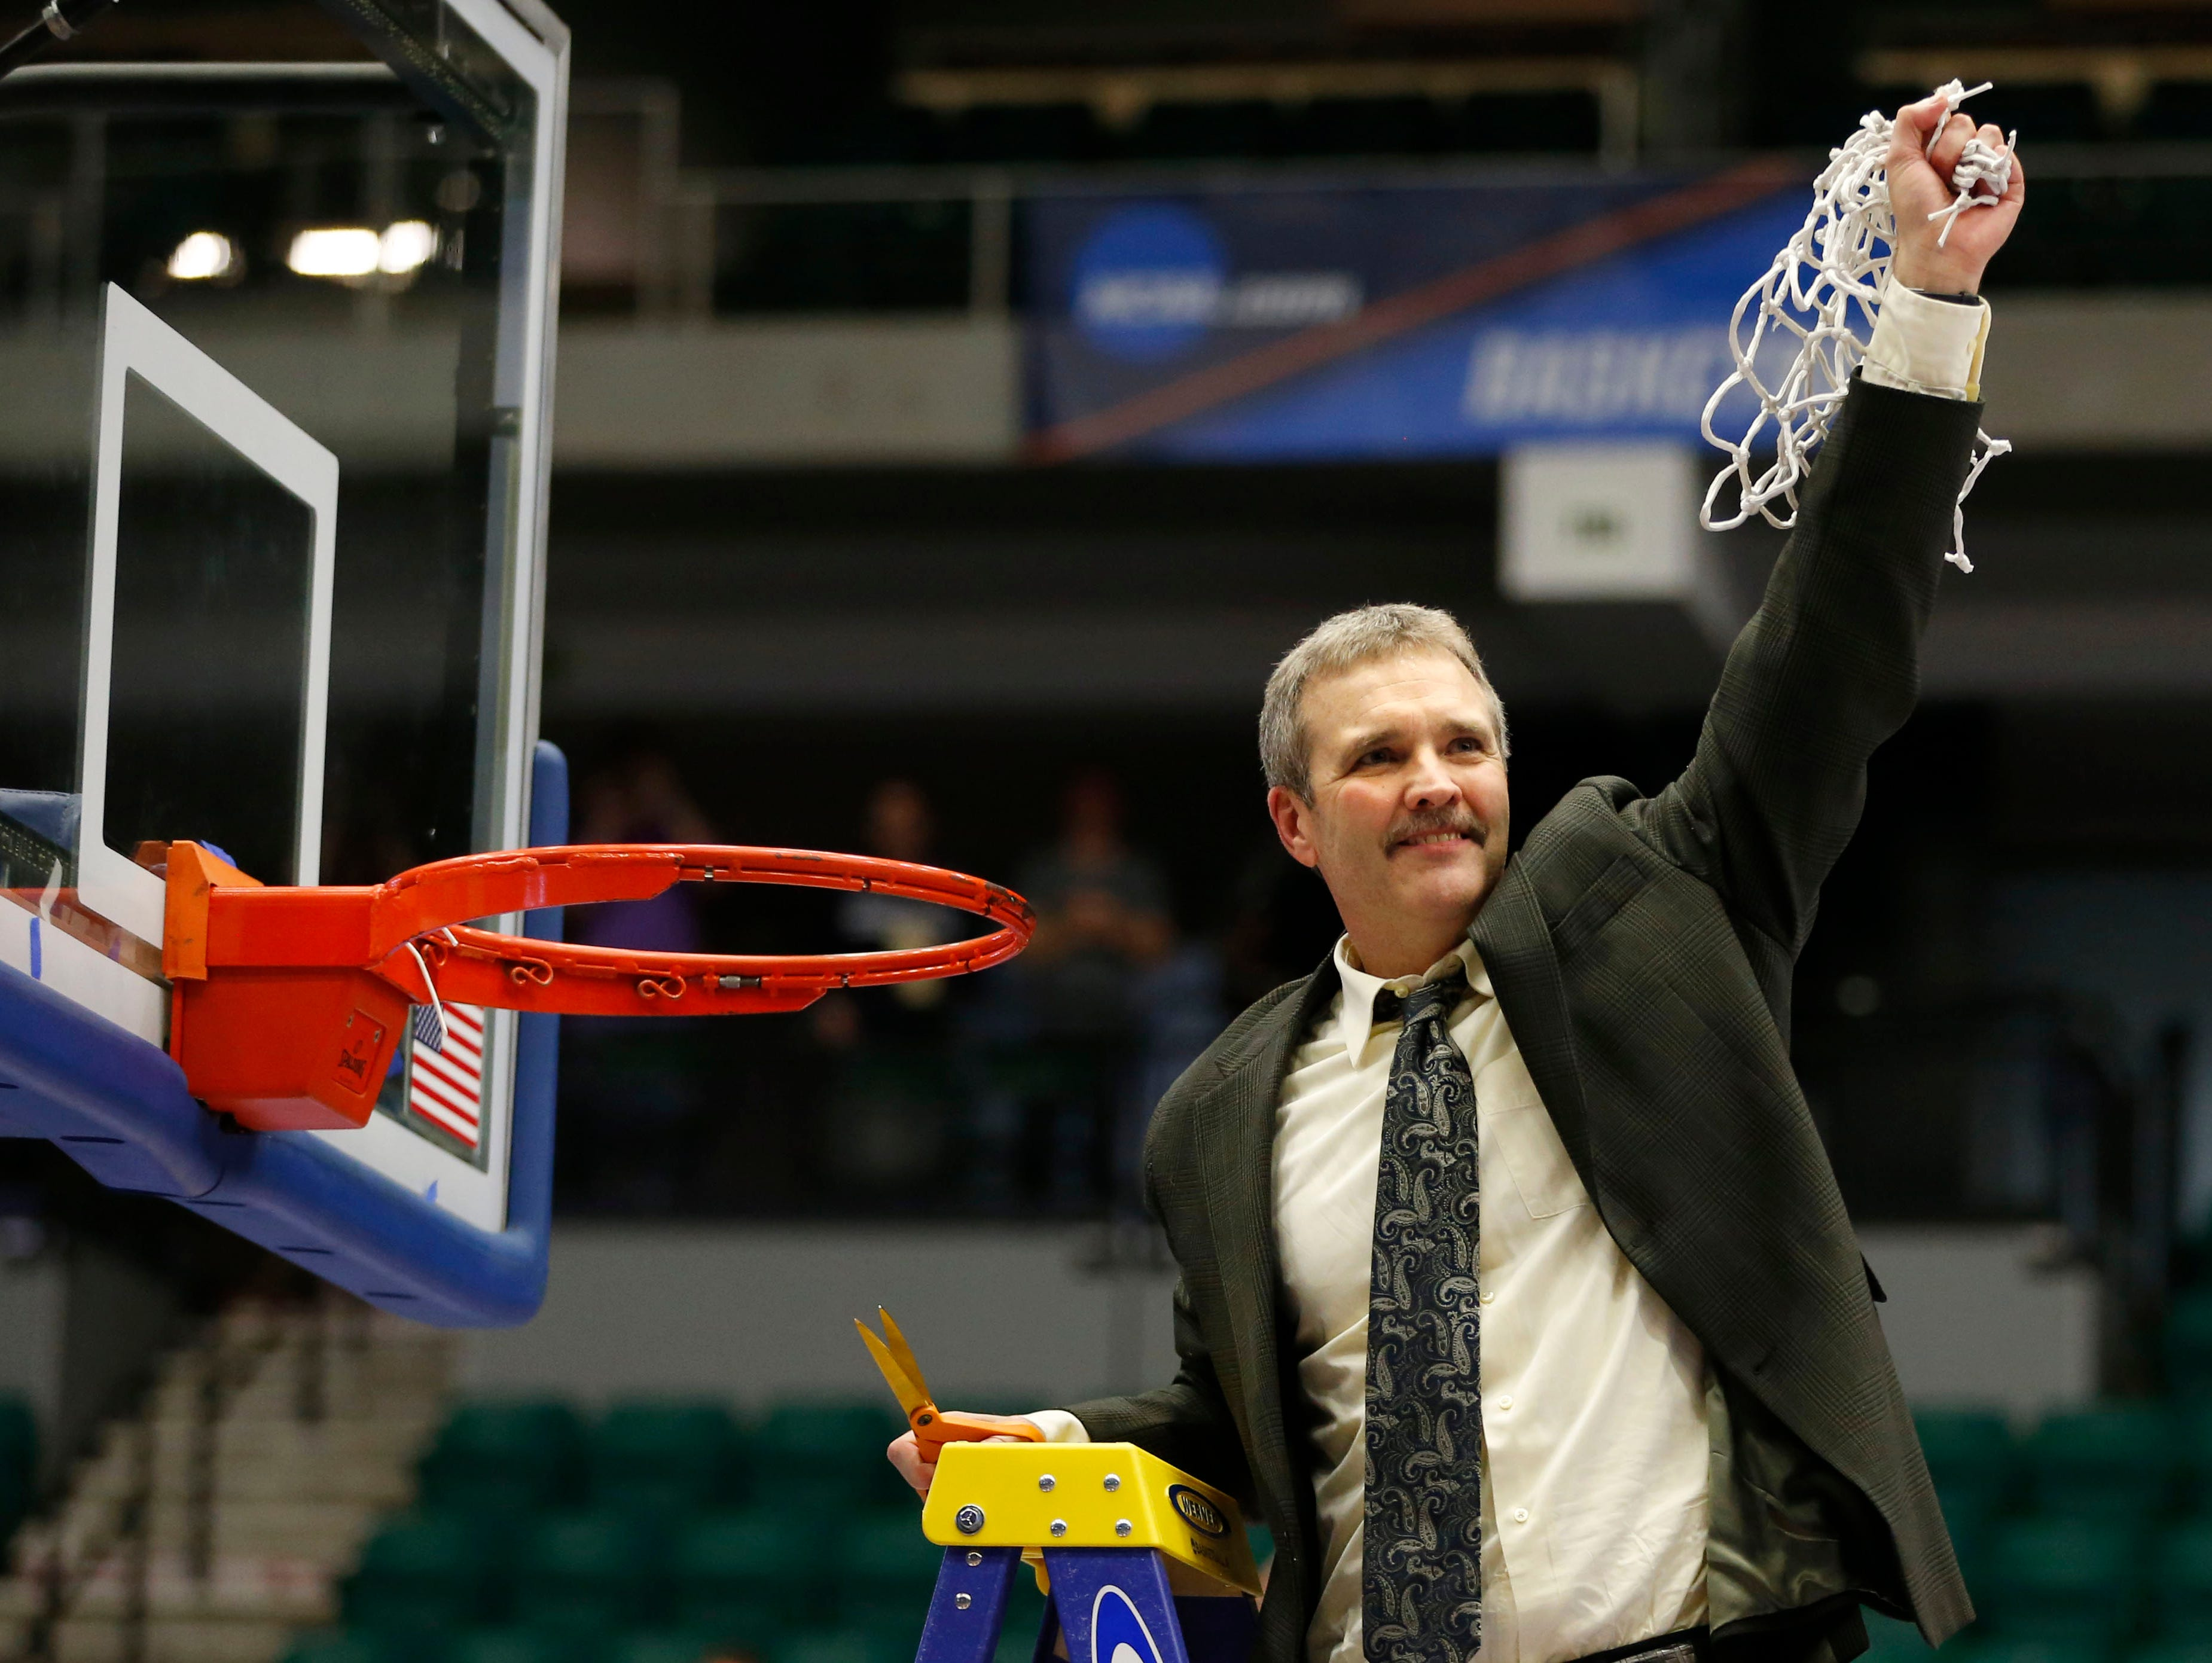 Augustana's head coach Tom Billeter celebrates after cutting down the net after defeating Lincoln Memorial in the 2016 Division II National Championship Game at Dr Pepper Arena in Frisco on Saturday, March 26, 2016. Augustana defeated Lincoln Memorial 90-81 to win the championship.